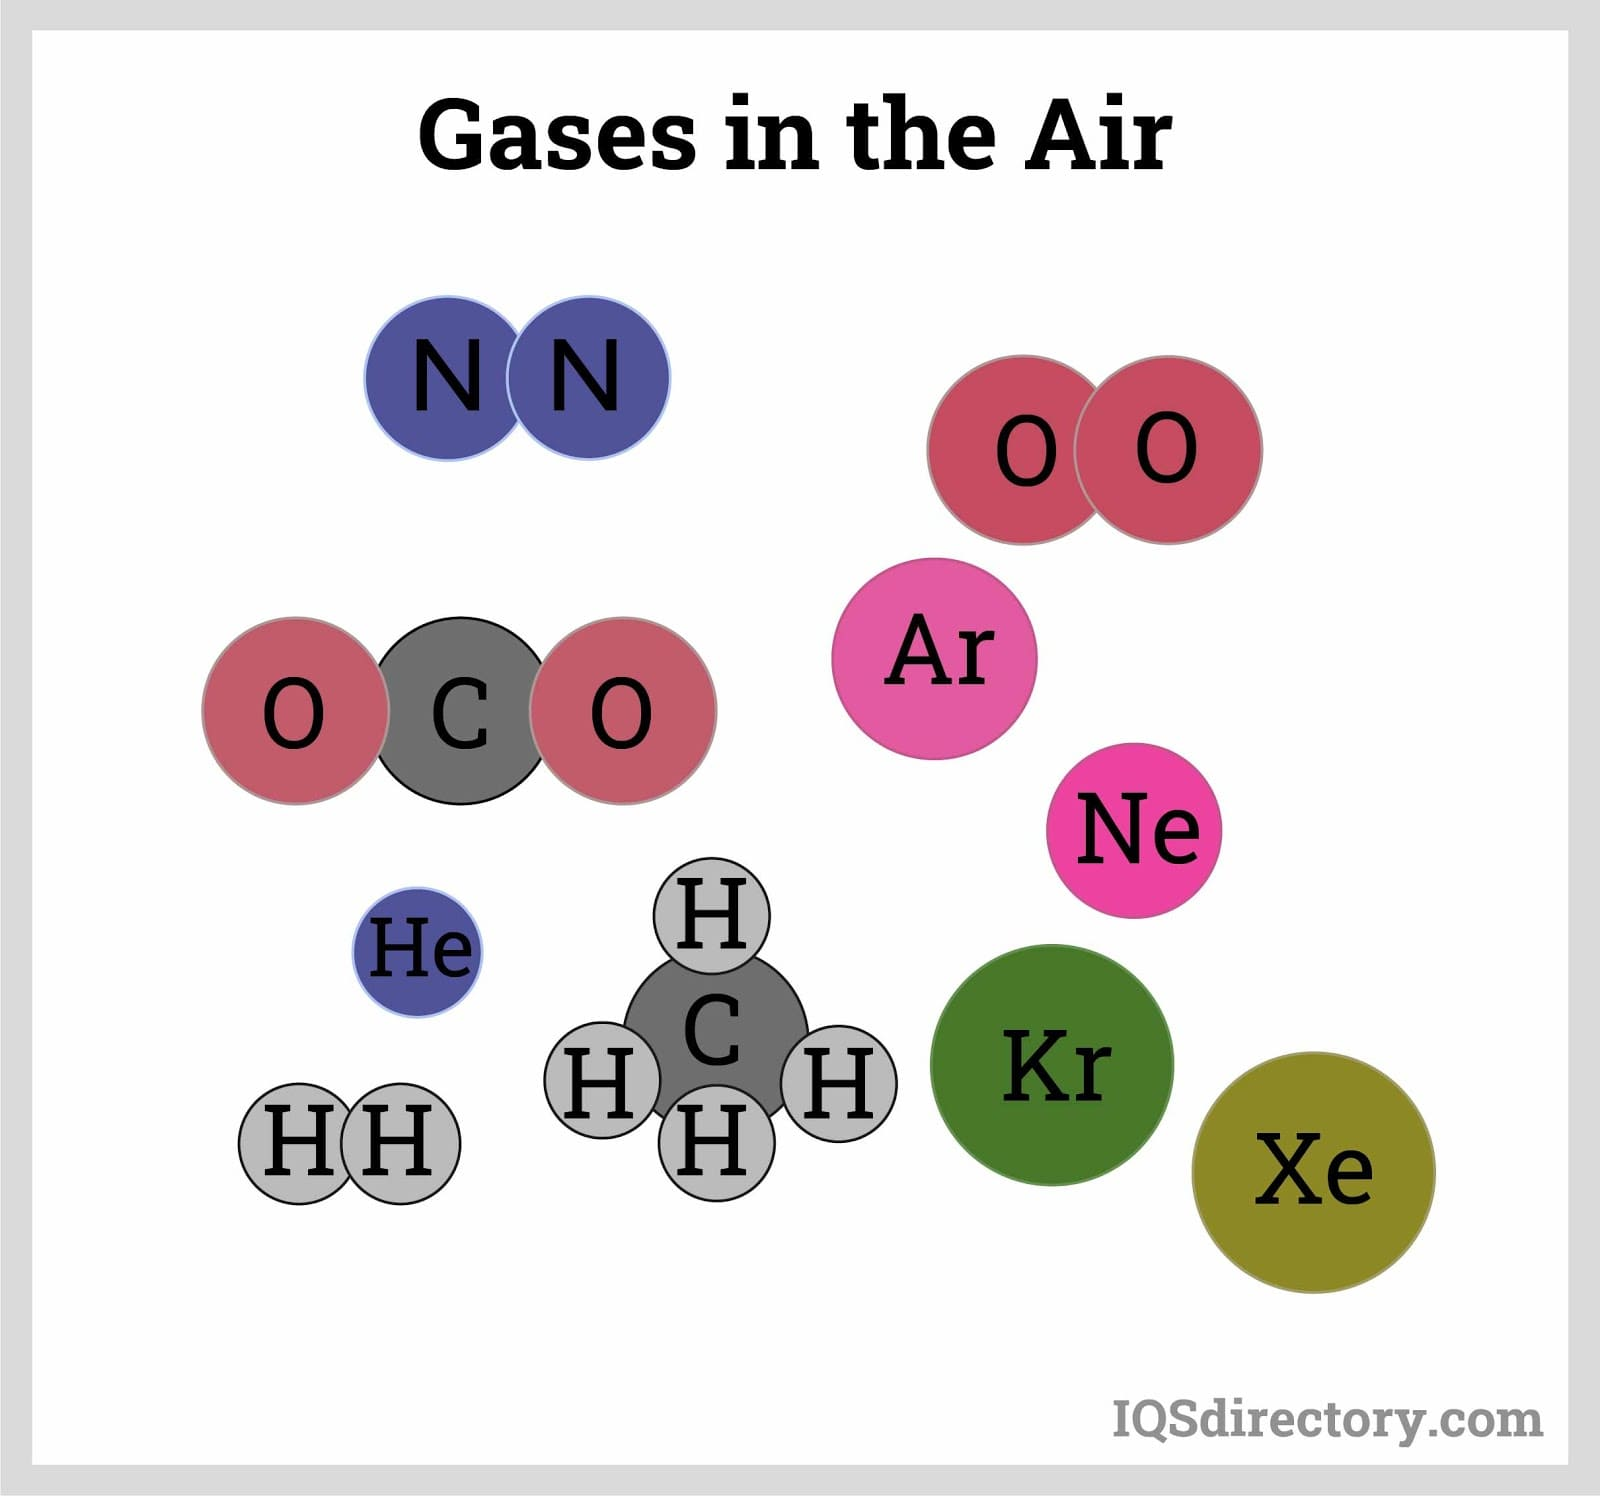 Gases in the Air